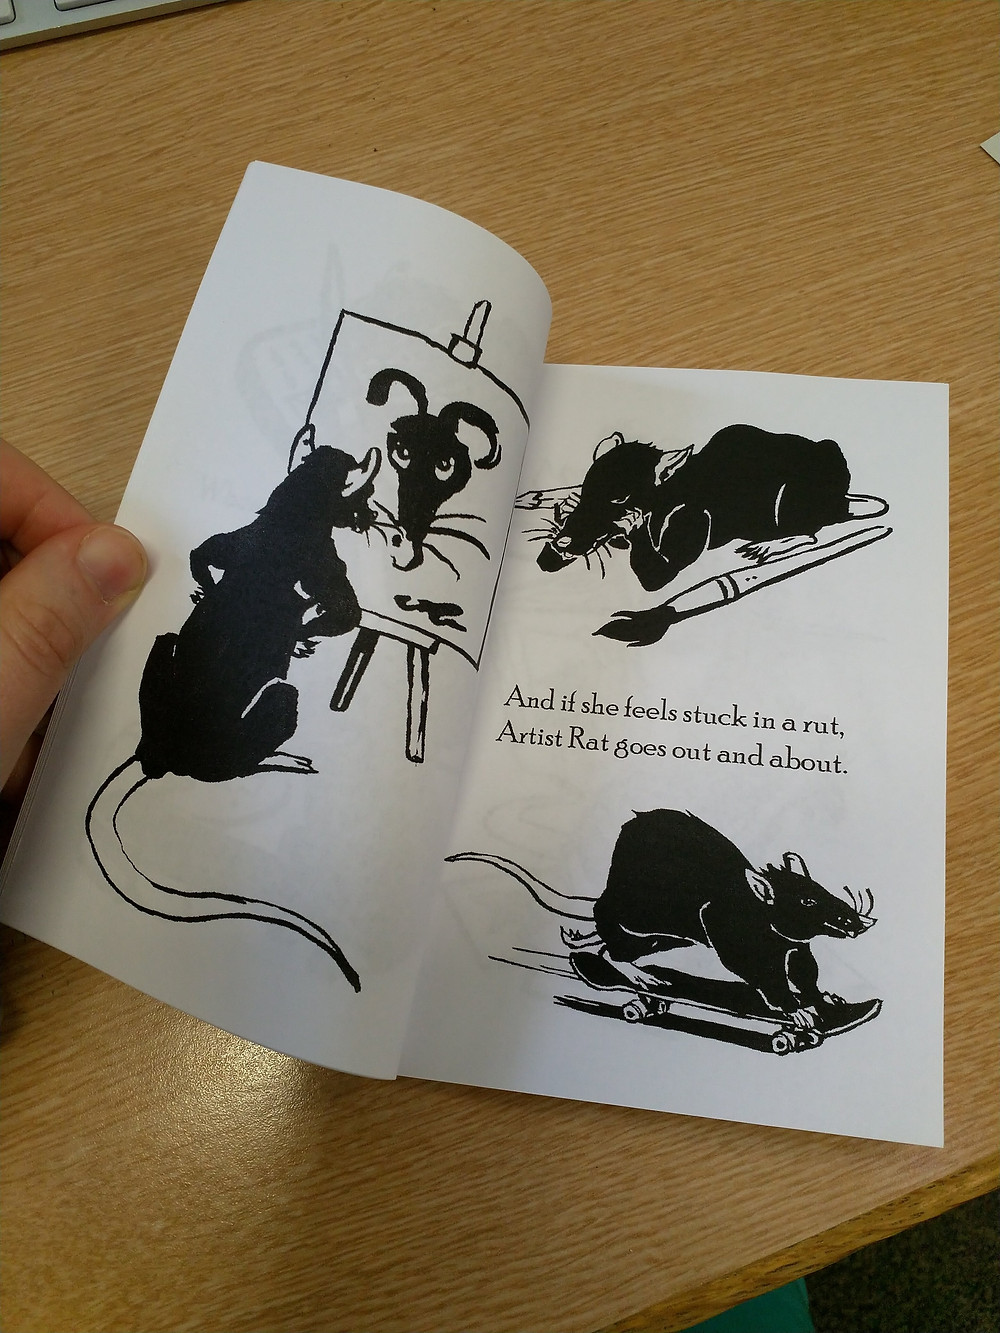 The Daily Life of an Artist Rat - A zine about maintaining a healthy work life balance for creative souls.